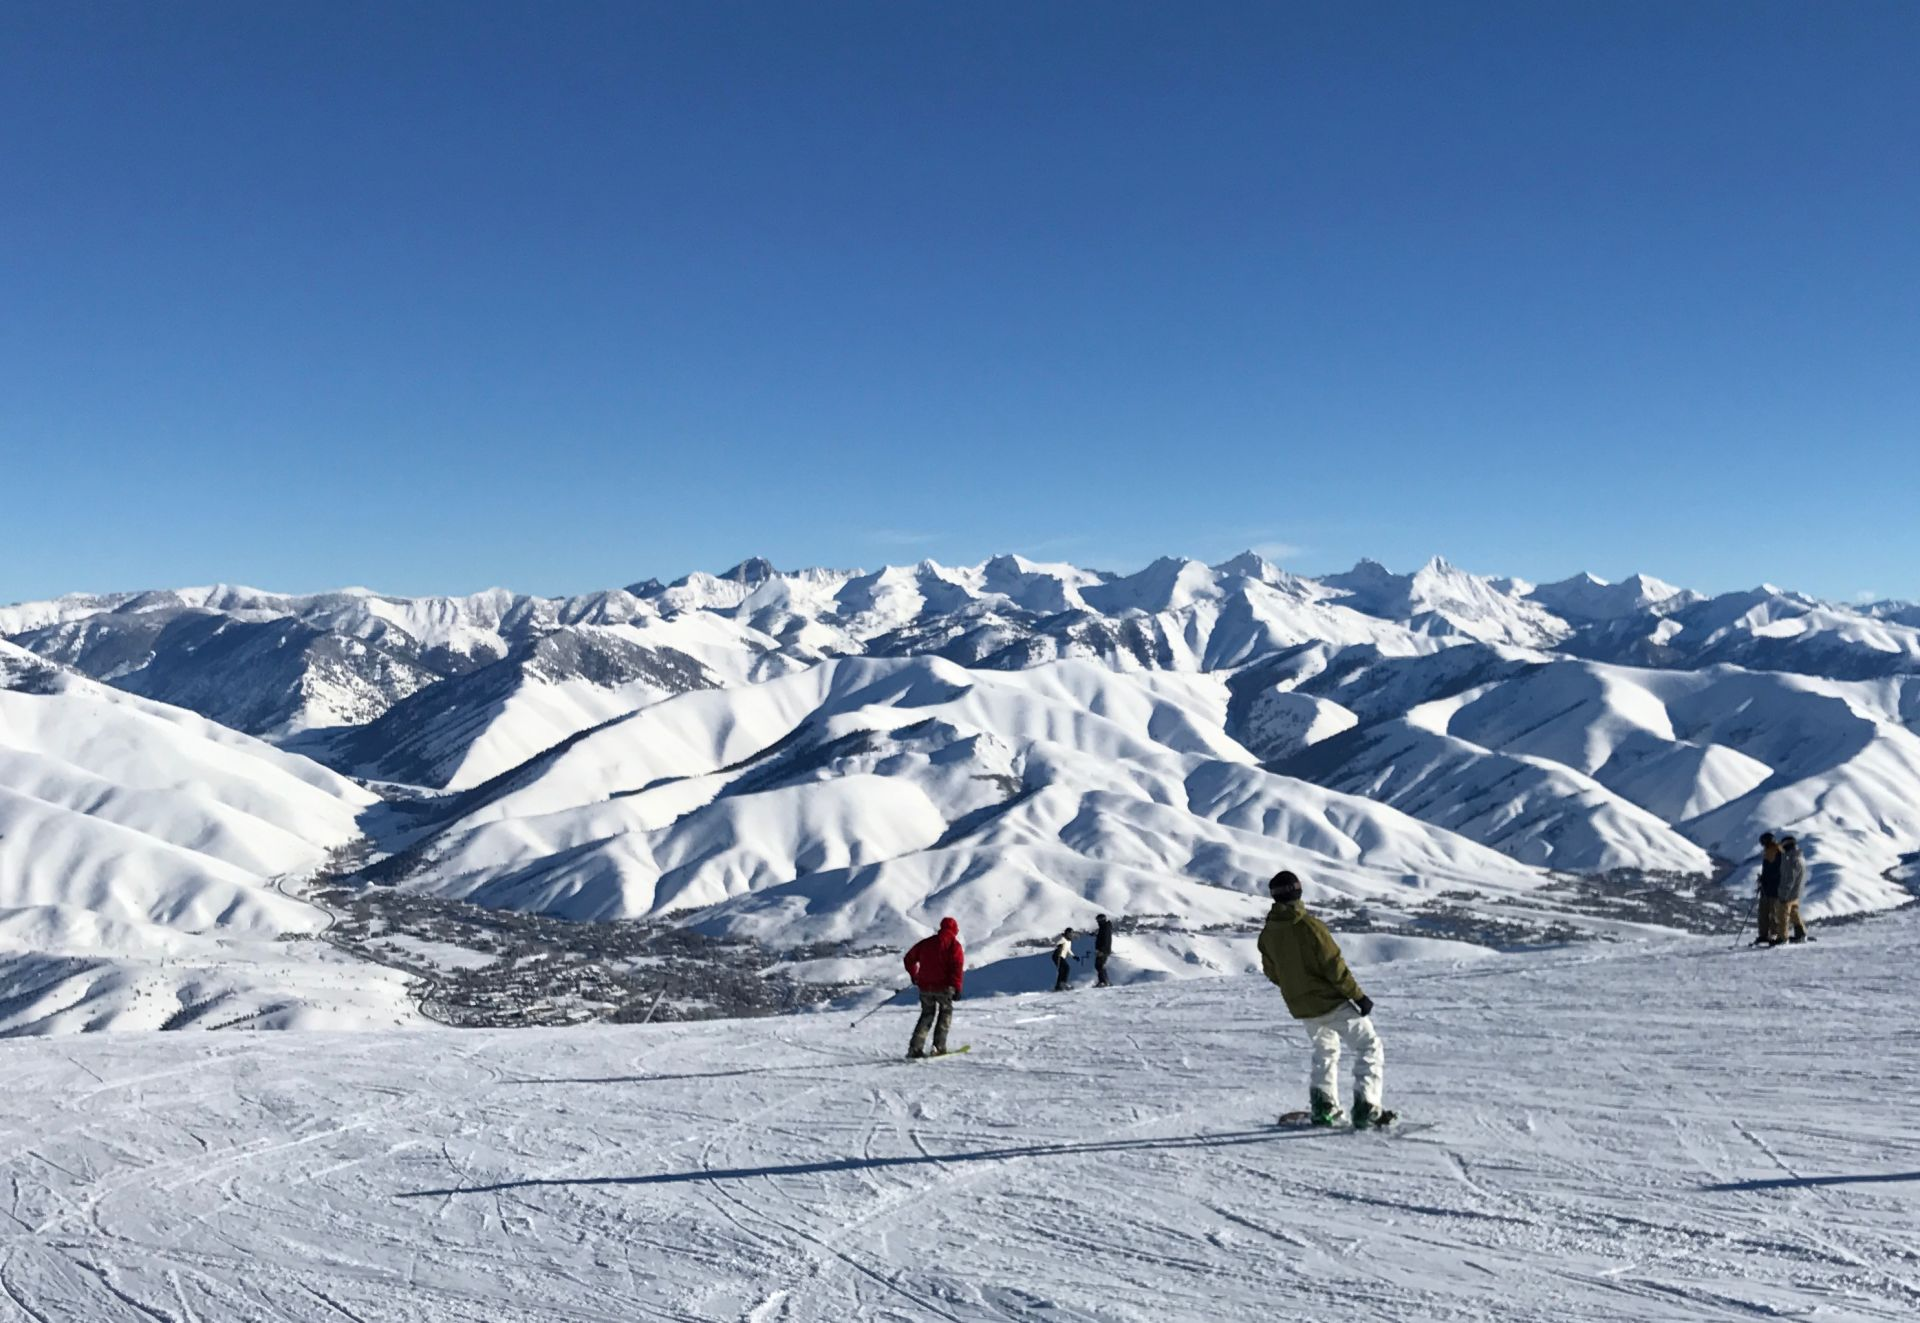 Skiing and Boarding Superb at Sun Valley